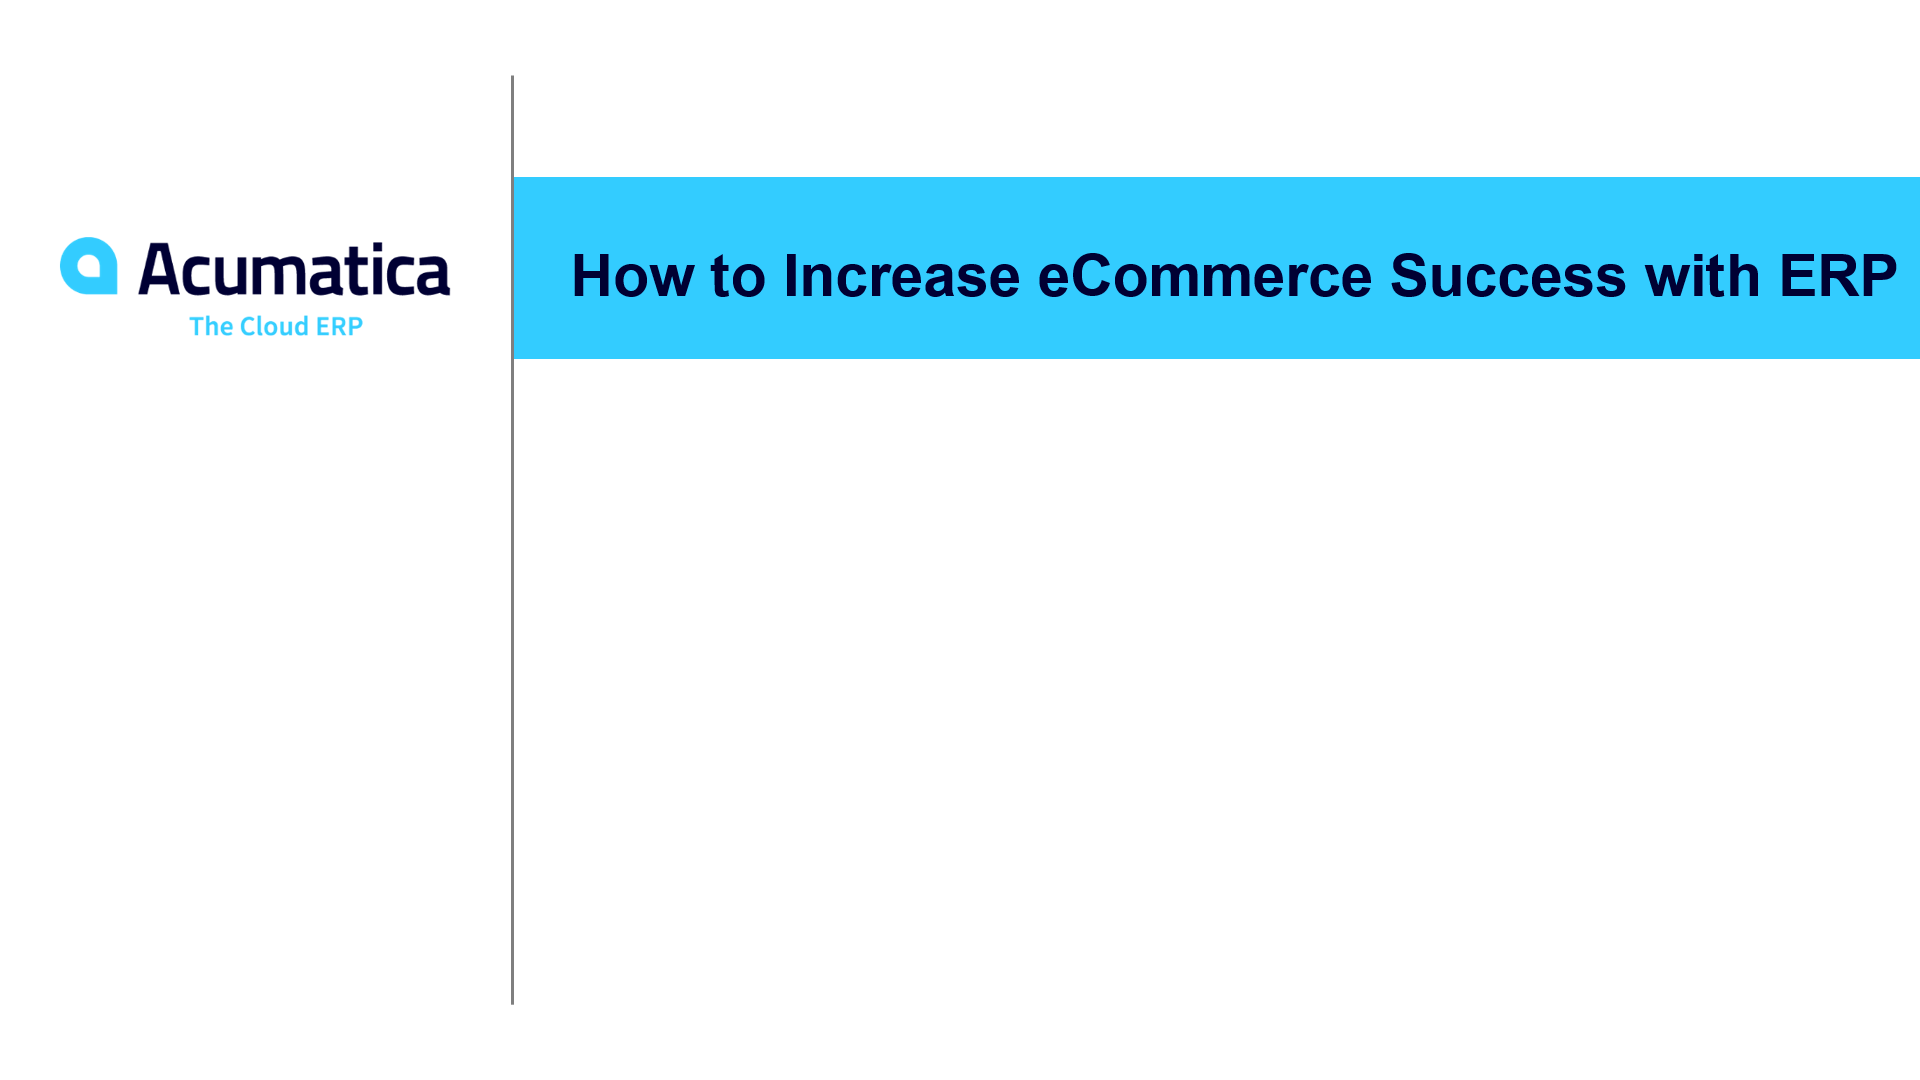 How to Increase eCommerce Success with ERP (September 2019)